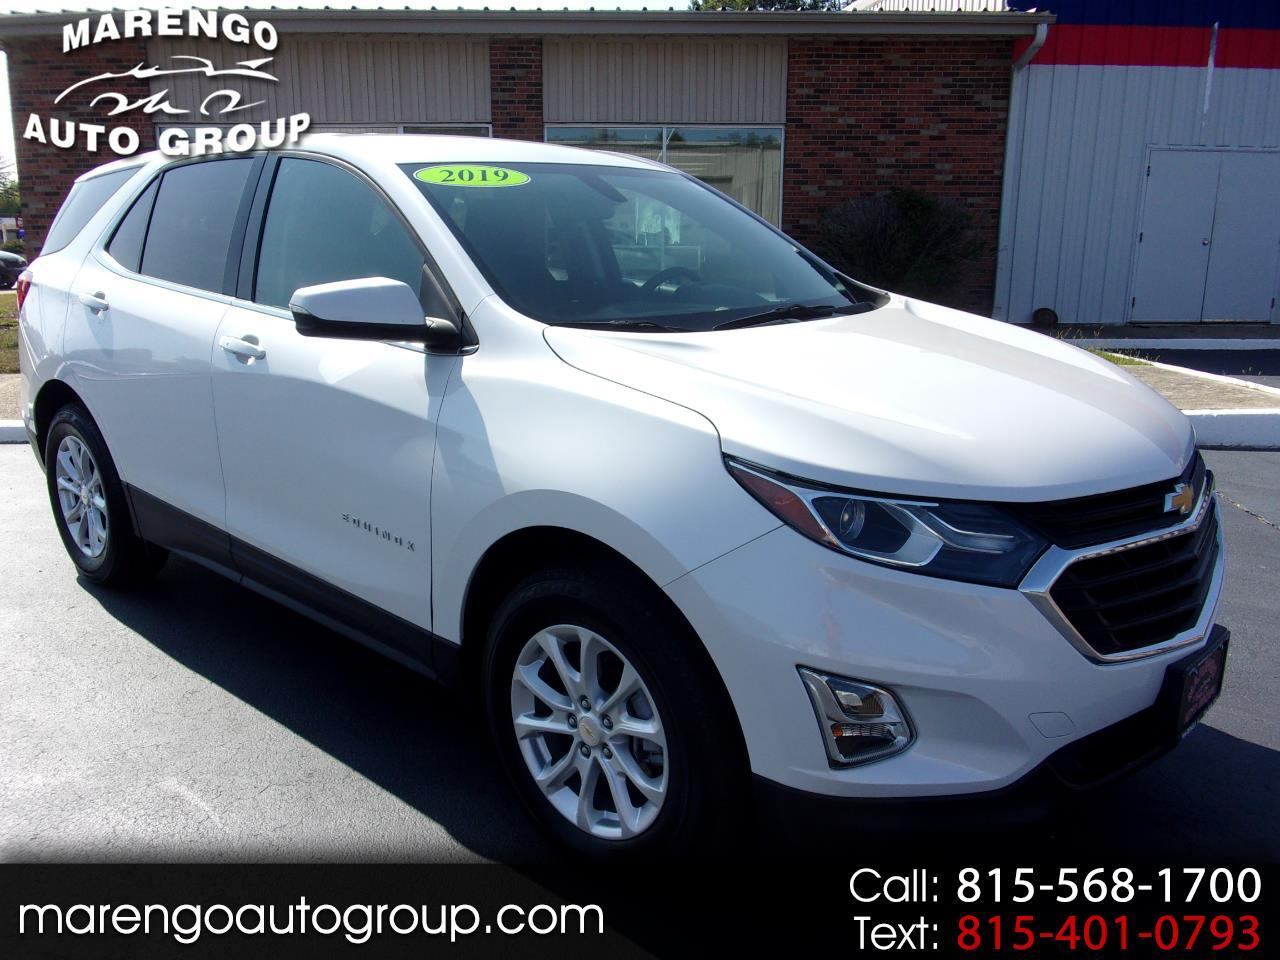 used 2019 Chevrolet Equinox car, priced at $22,996